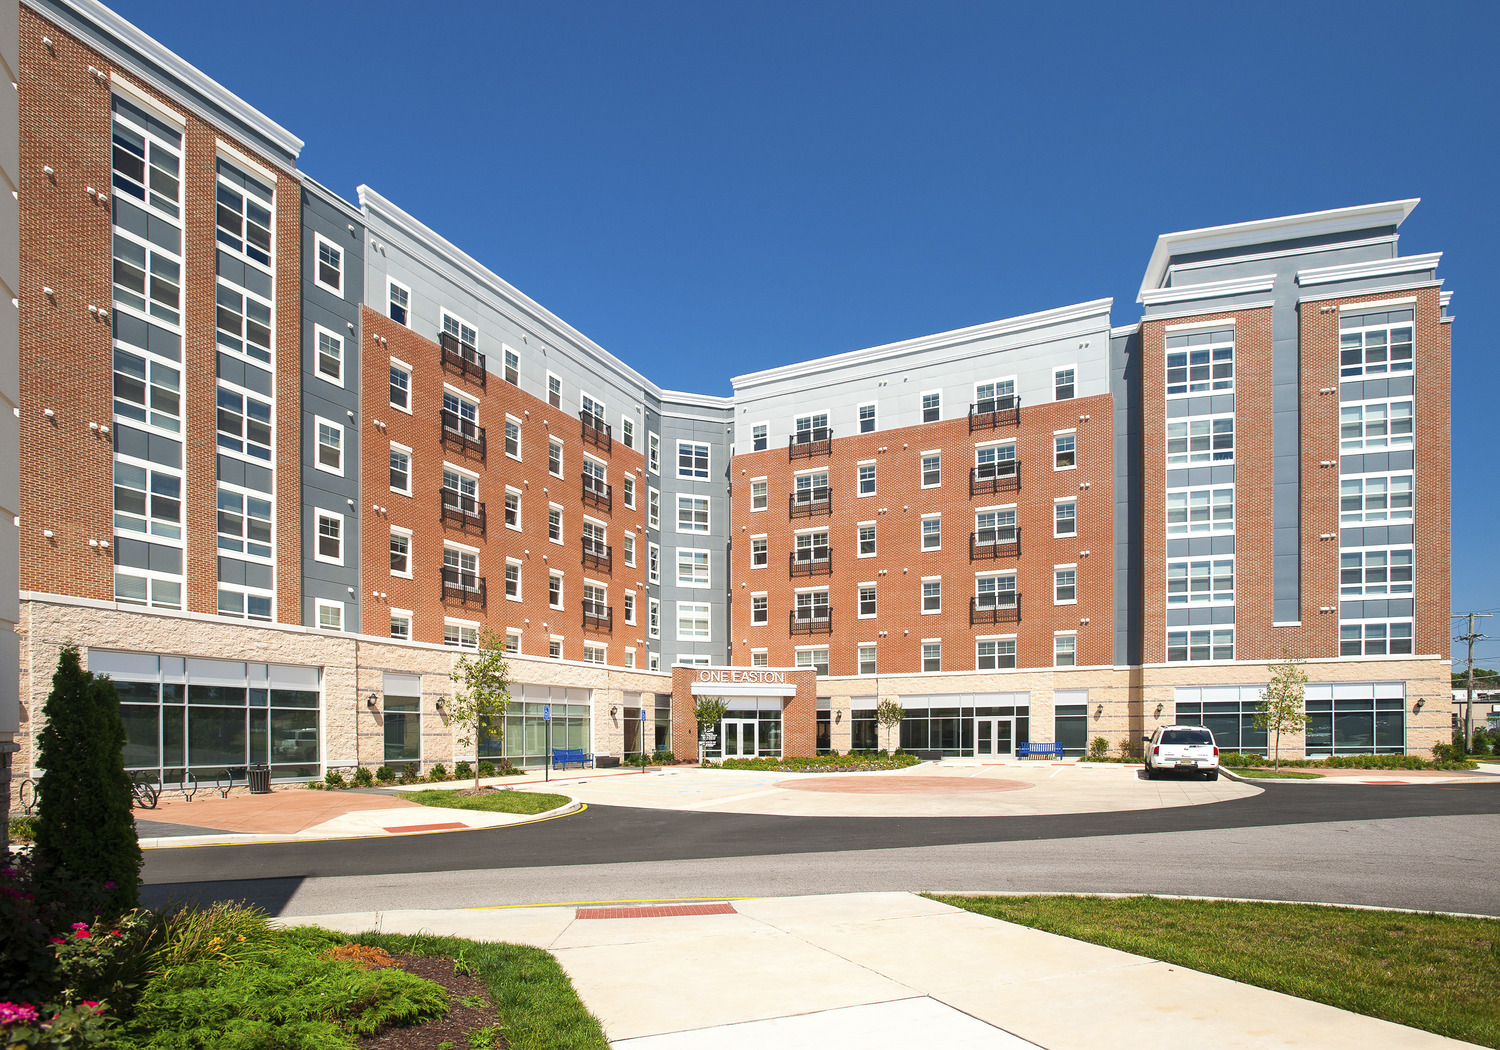 CBG builds One Easton, a 440-Bed Student Housing Community with Precast Parking Garage and Amenity Areas in Newark, DE